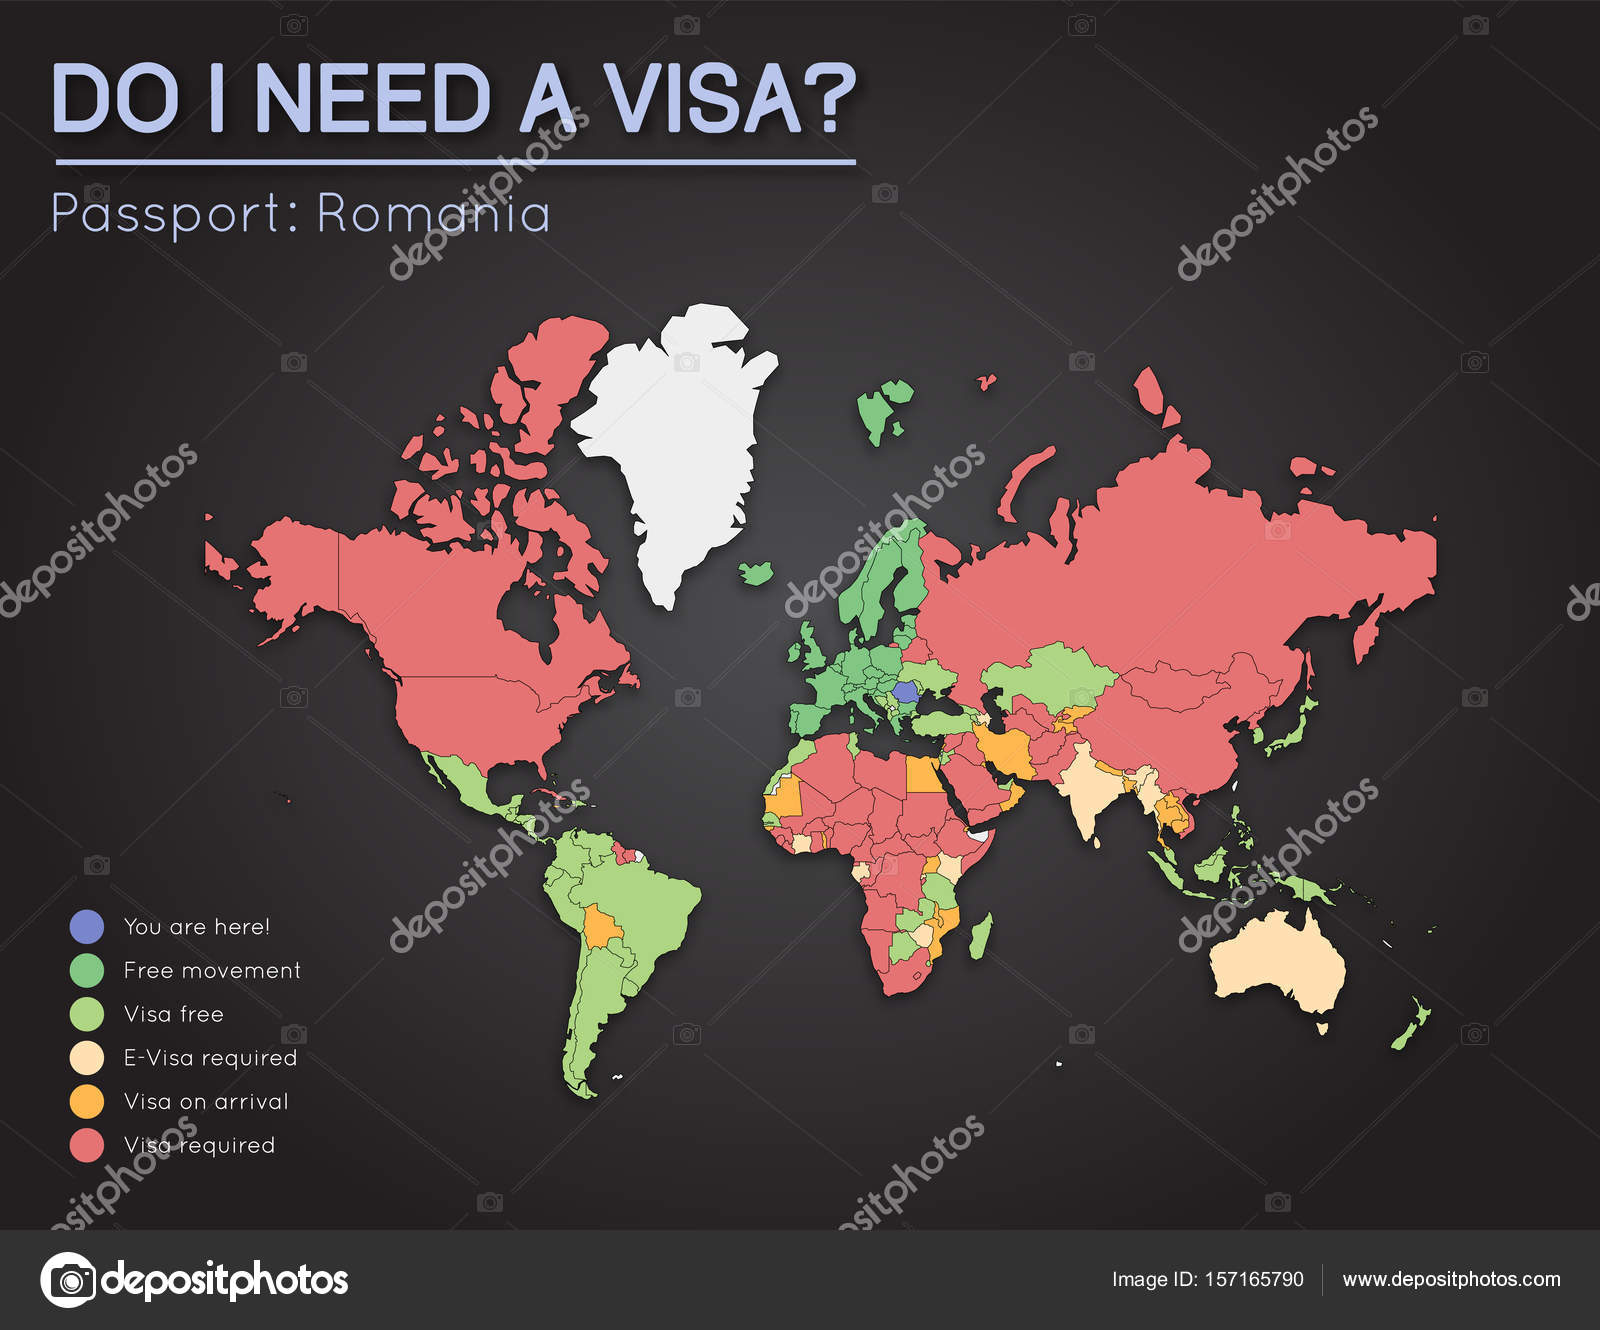 Visas information for romania passport holders year 2017 world map visas information for romania passport holders year 2017 world map infographics showing visa requirements for all countries vector illustration gumiabroncs Image collections